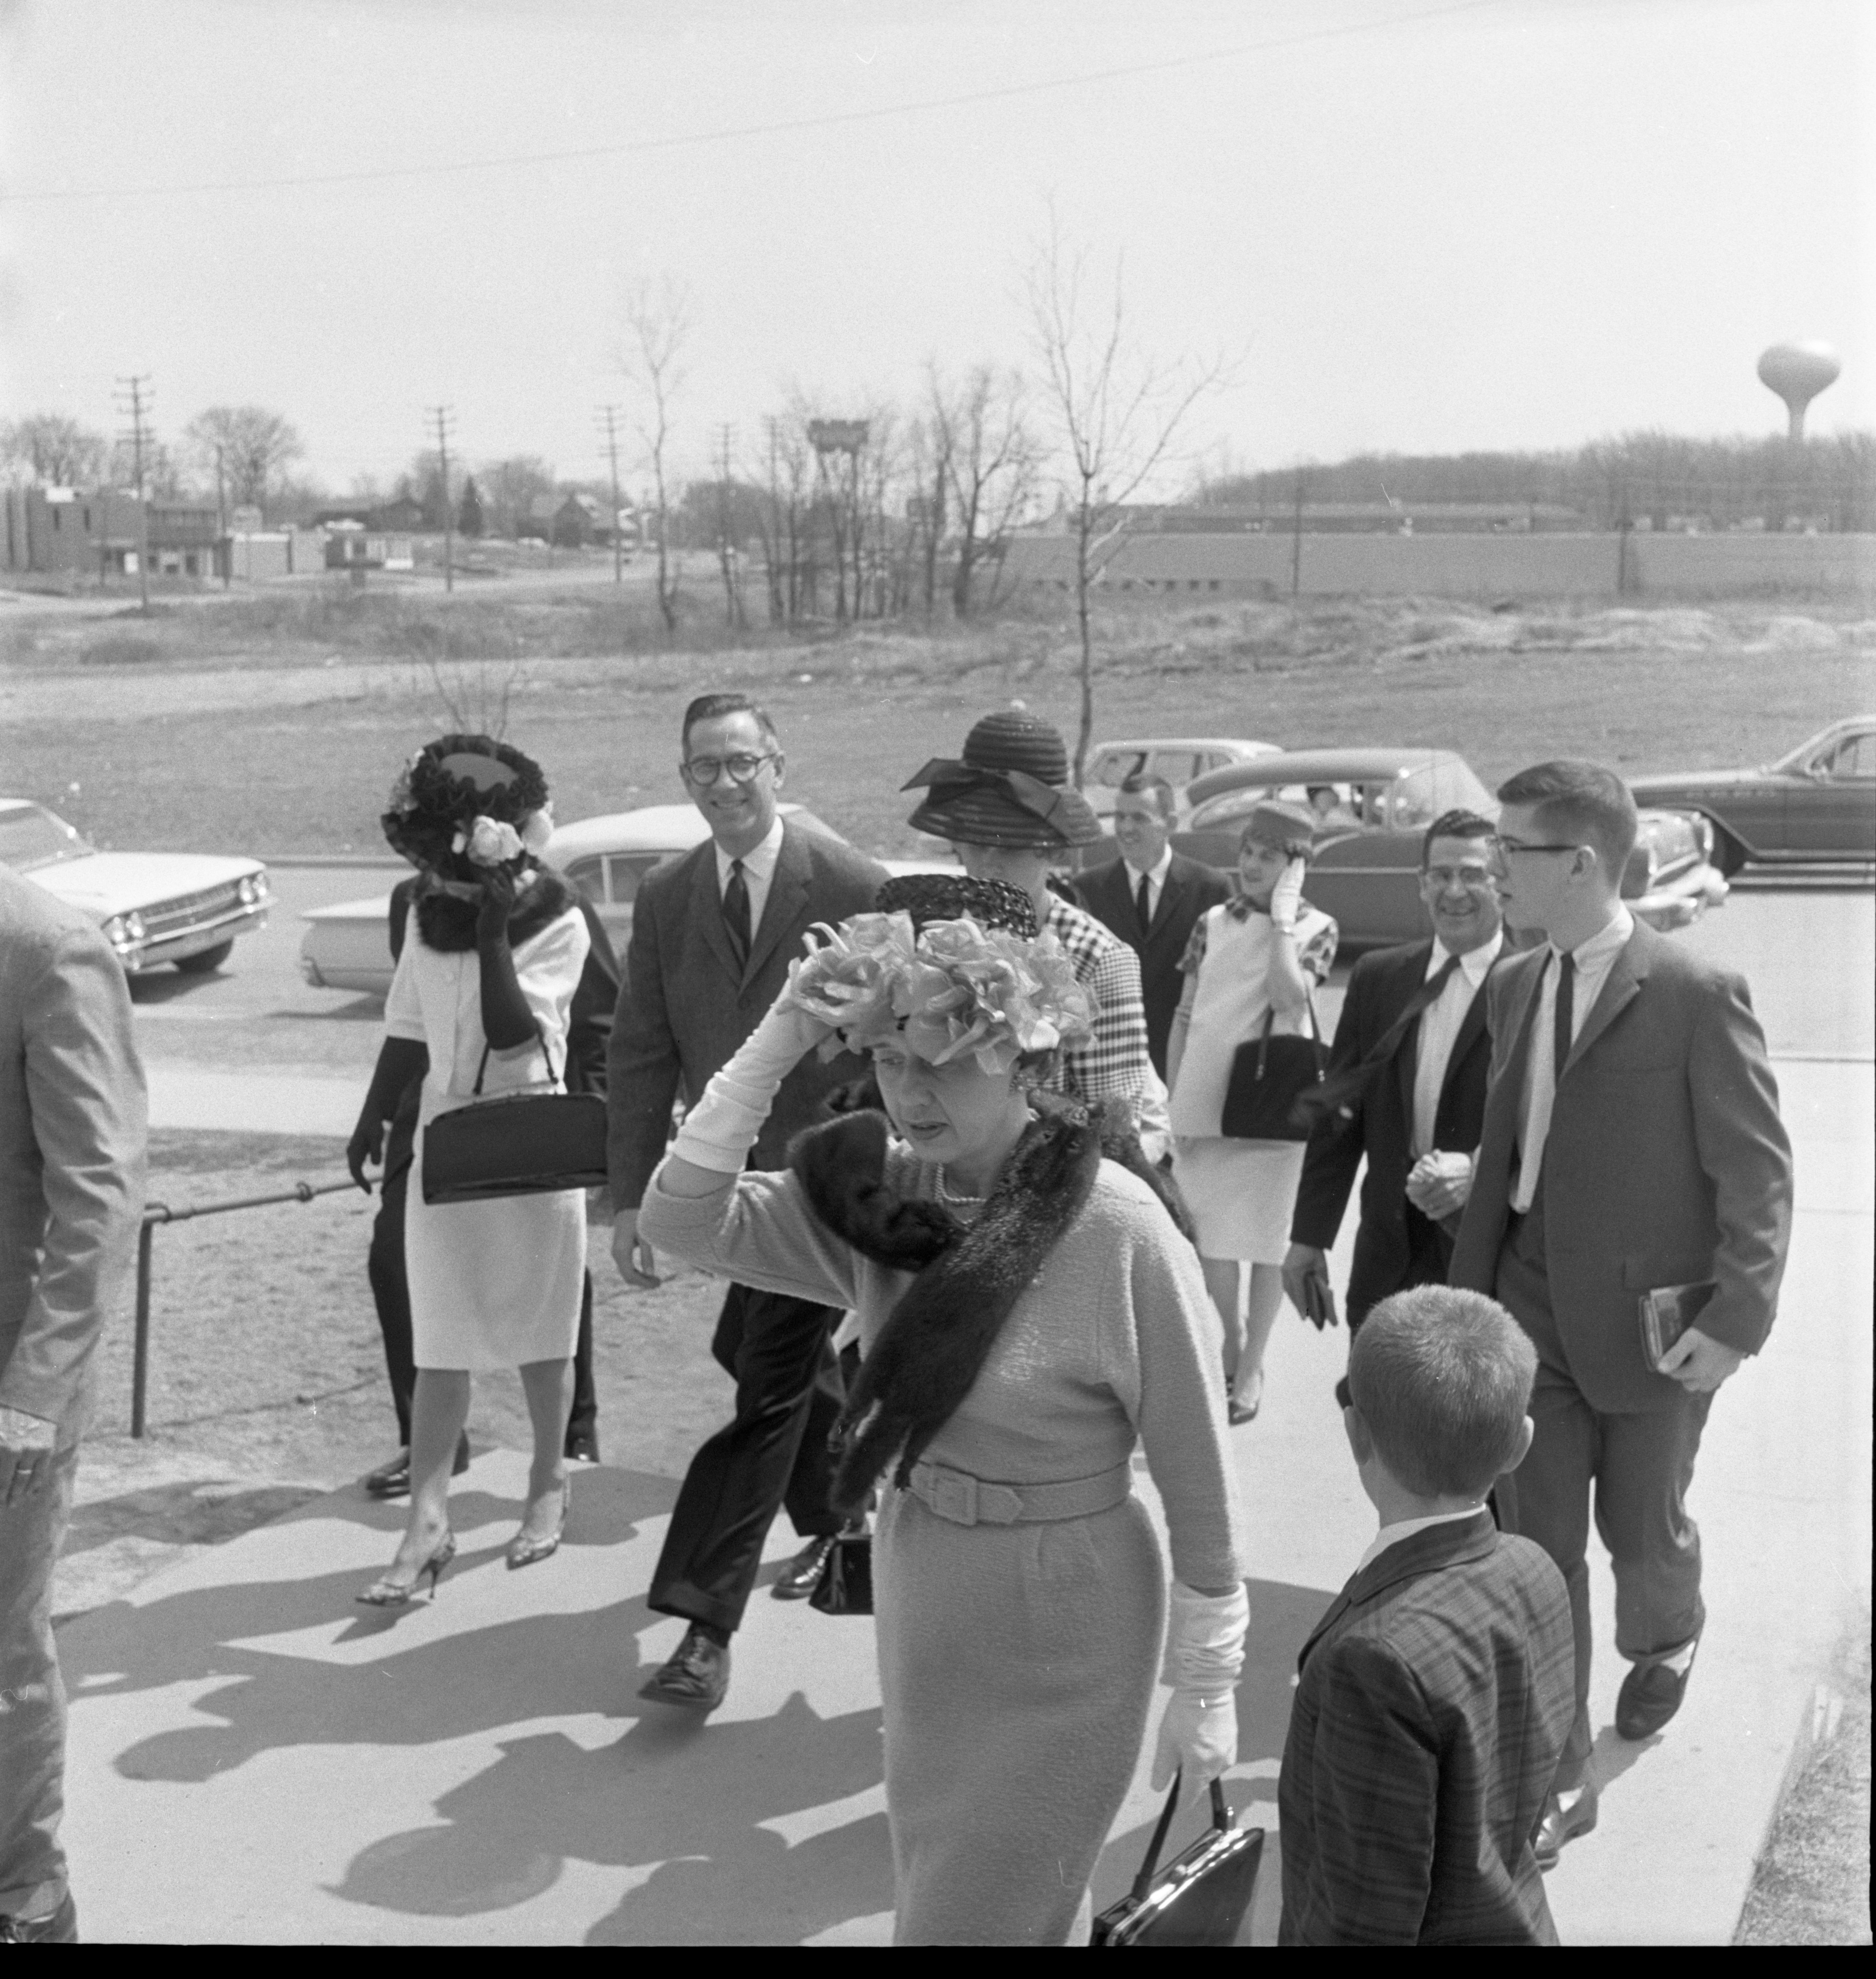 Families Arriving For Easter Service At St. Francis Church - April 22, 1962 image